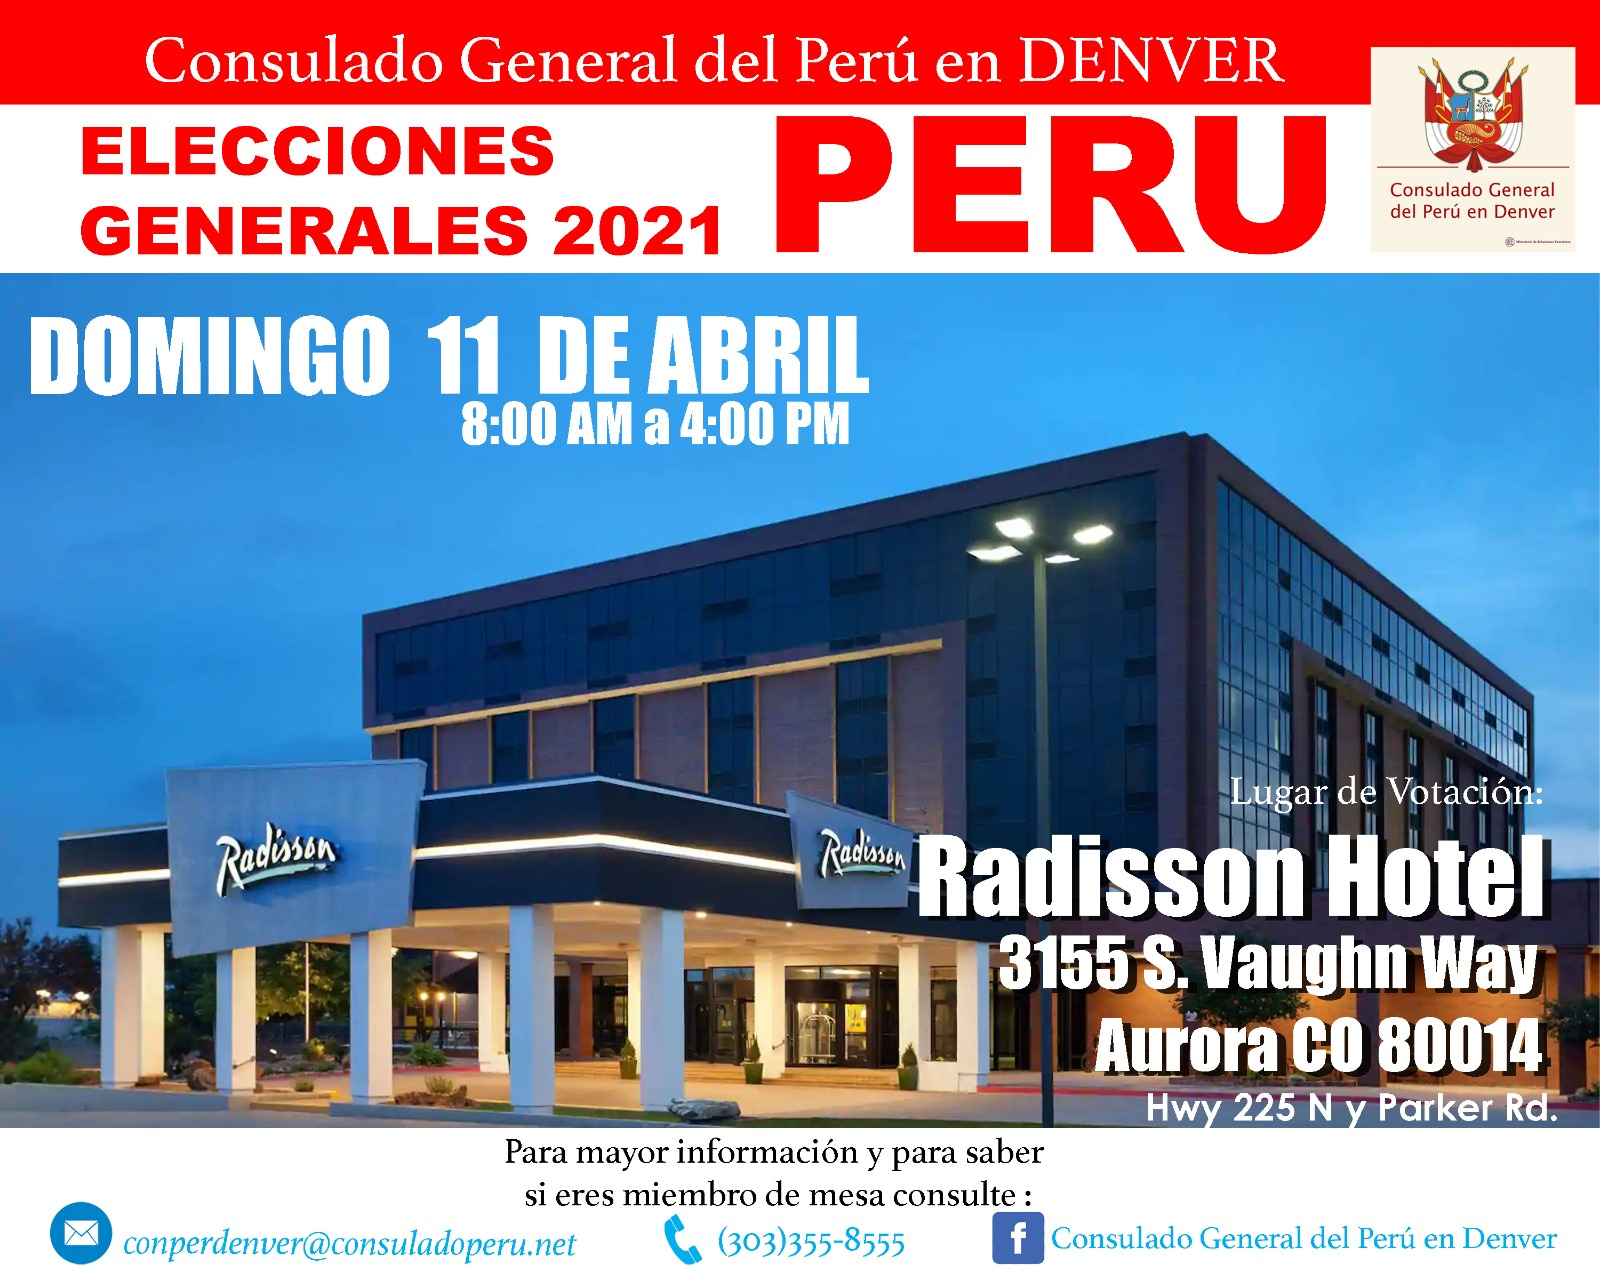 01 ELECCIONES EN DENVER COLORADO